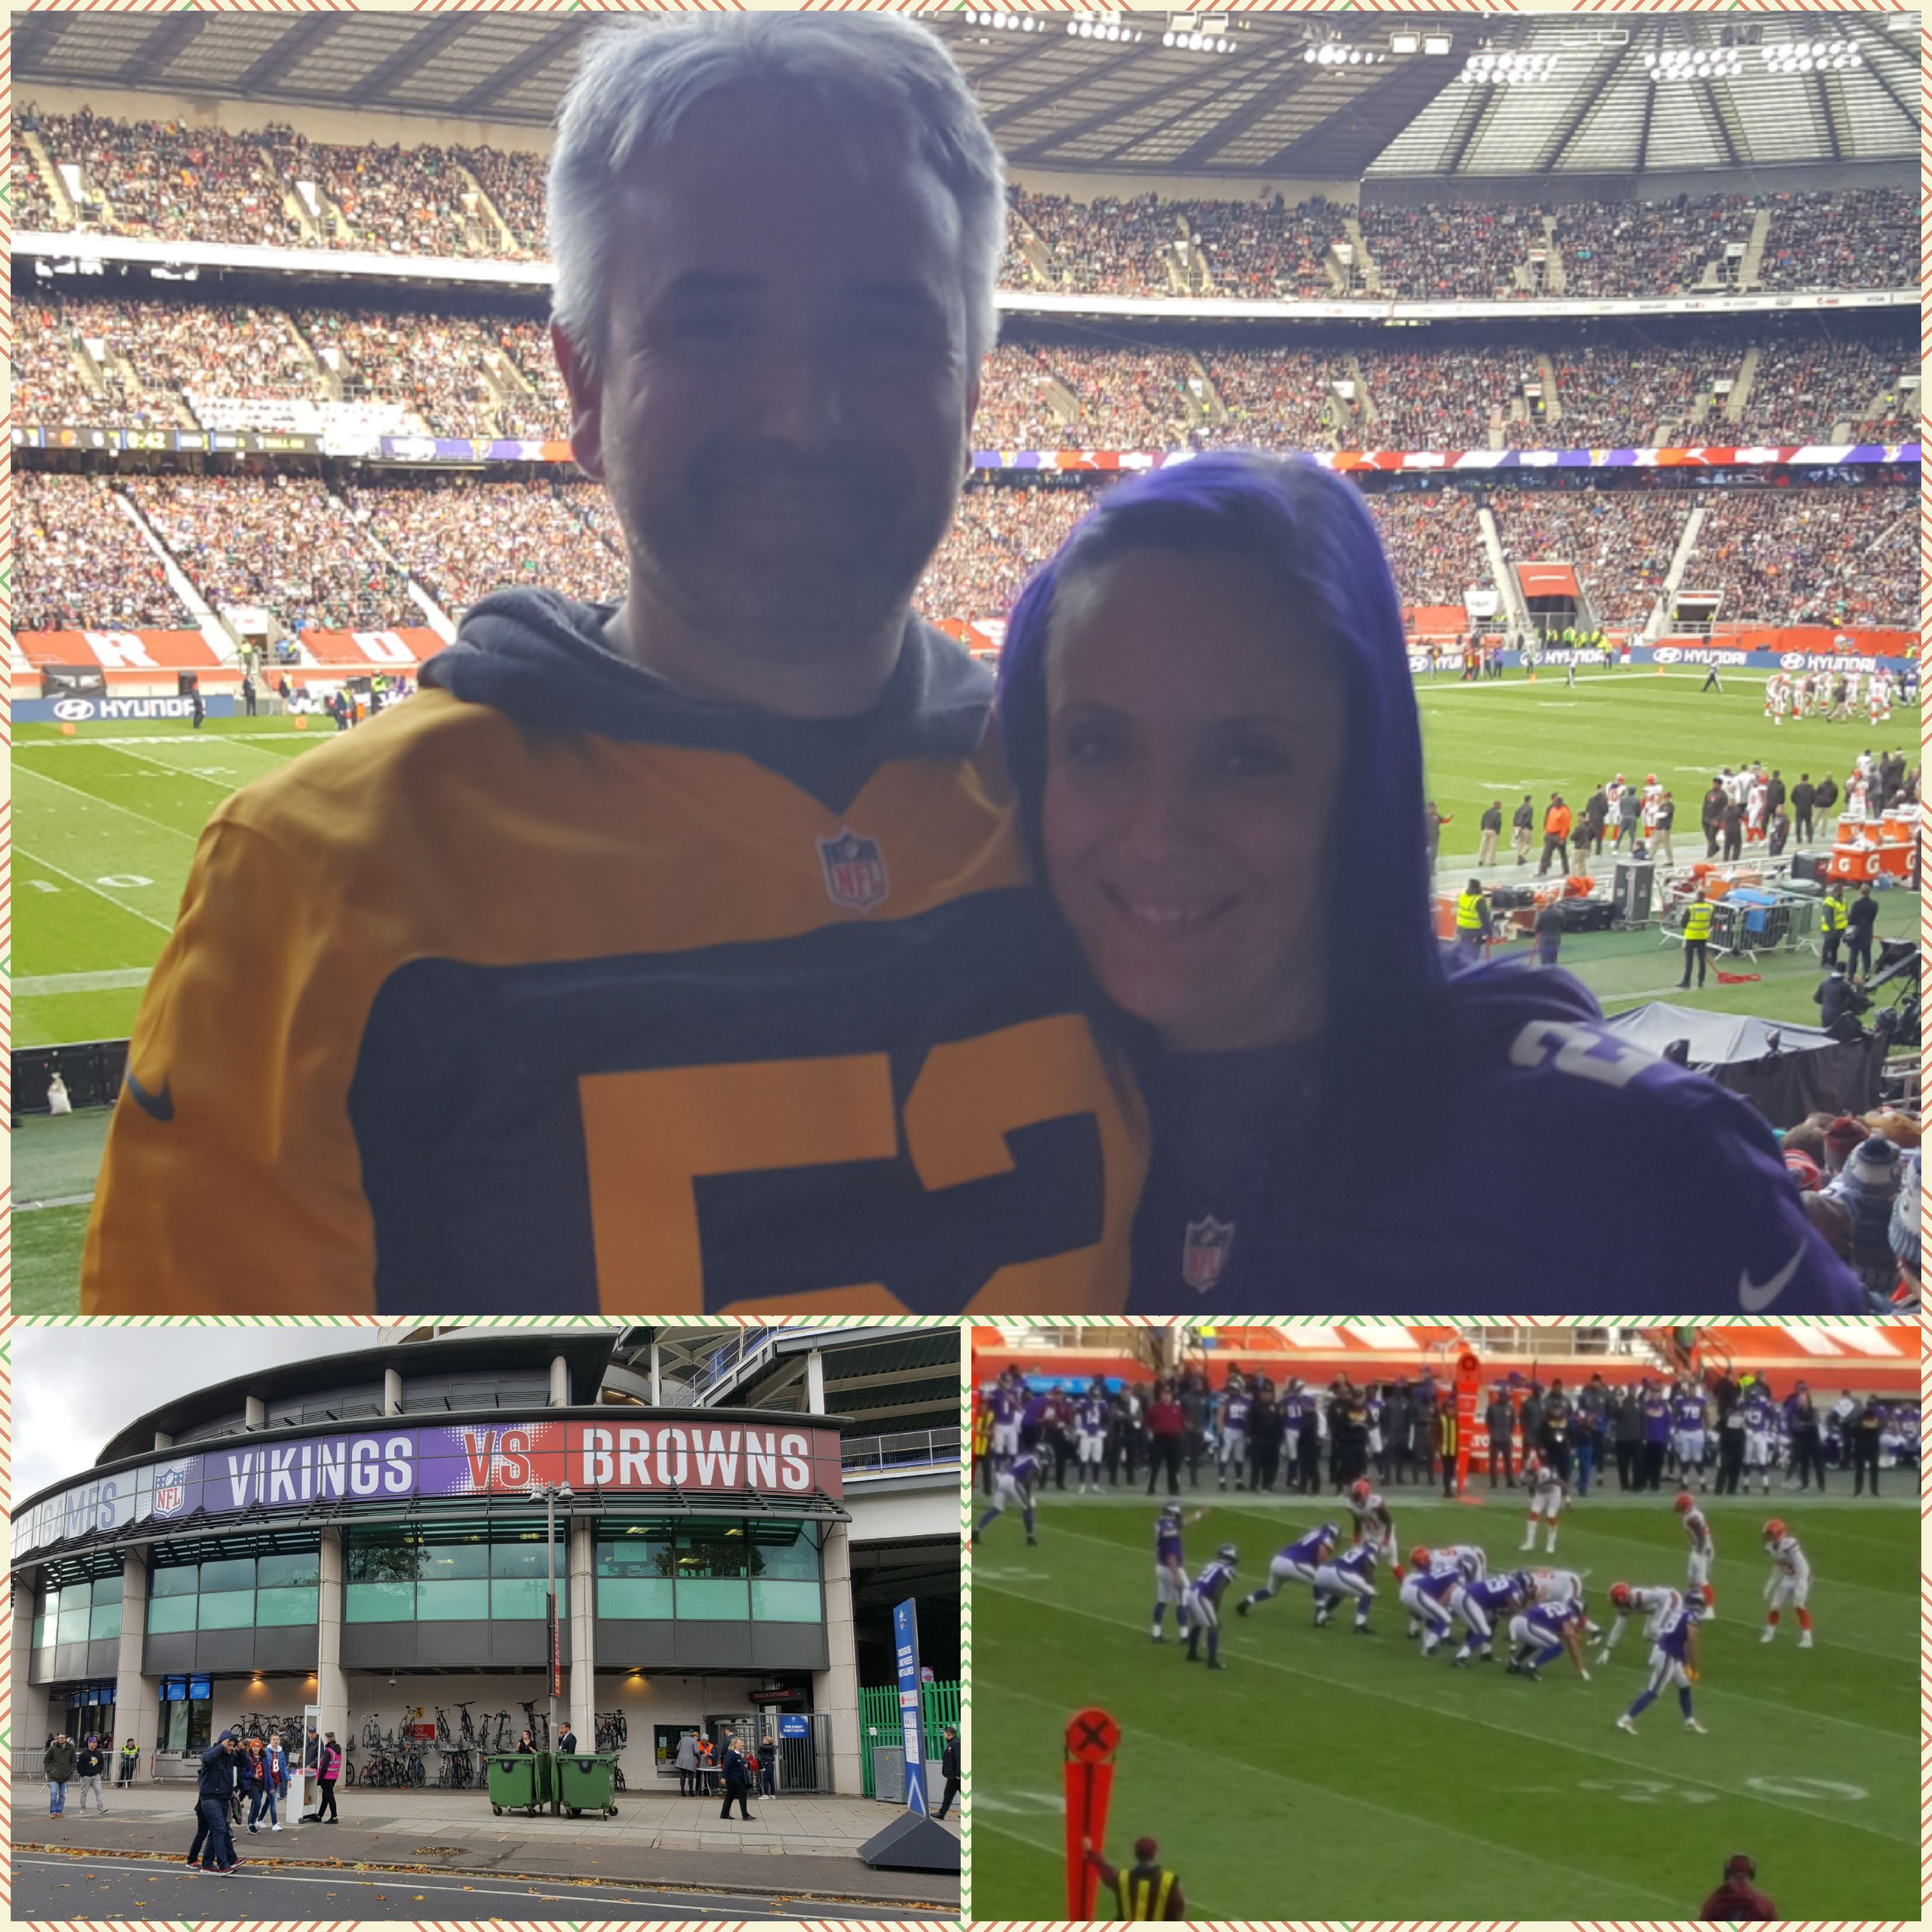 Celebrating female NFL fans in the UK: Introducing Vikings fan, Rachel Poulson.